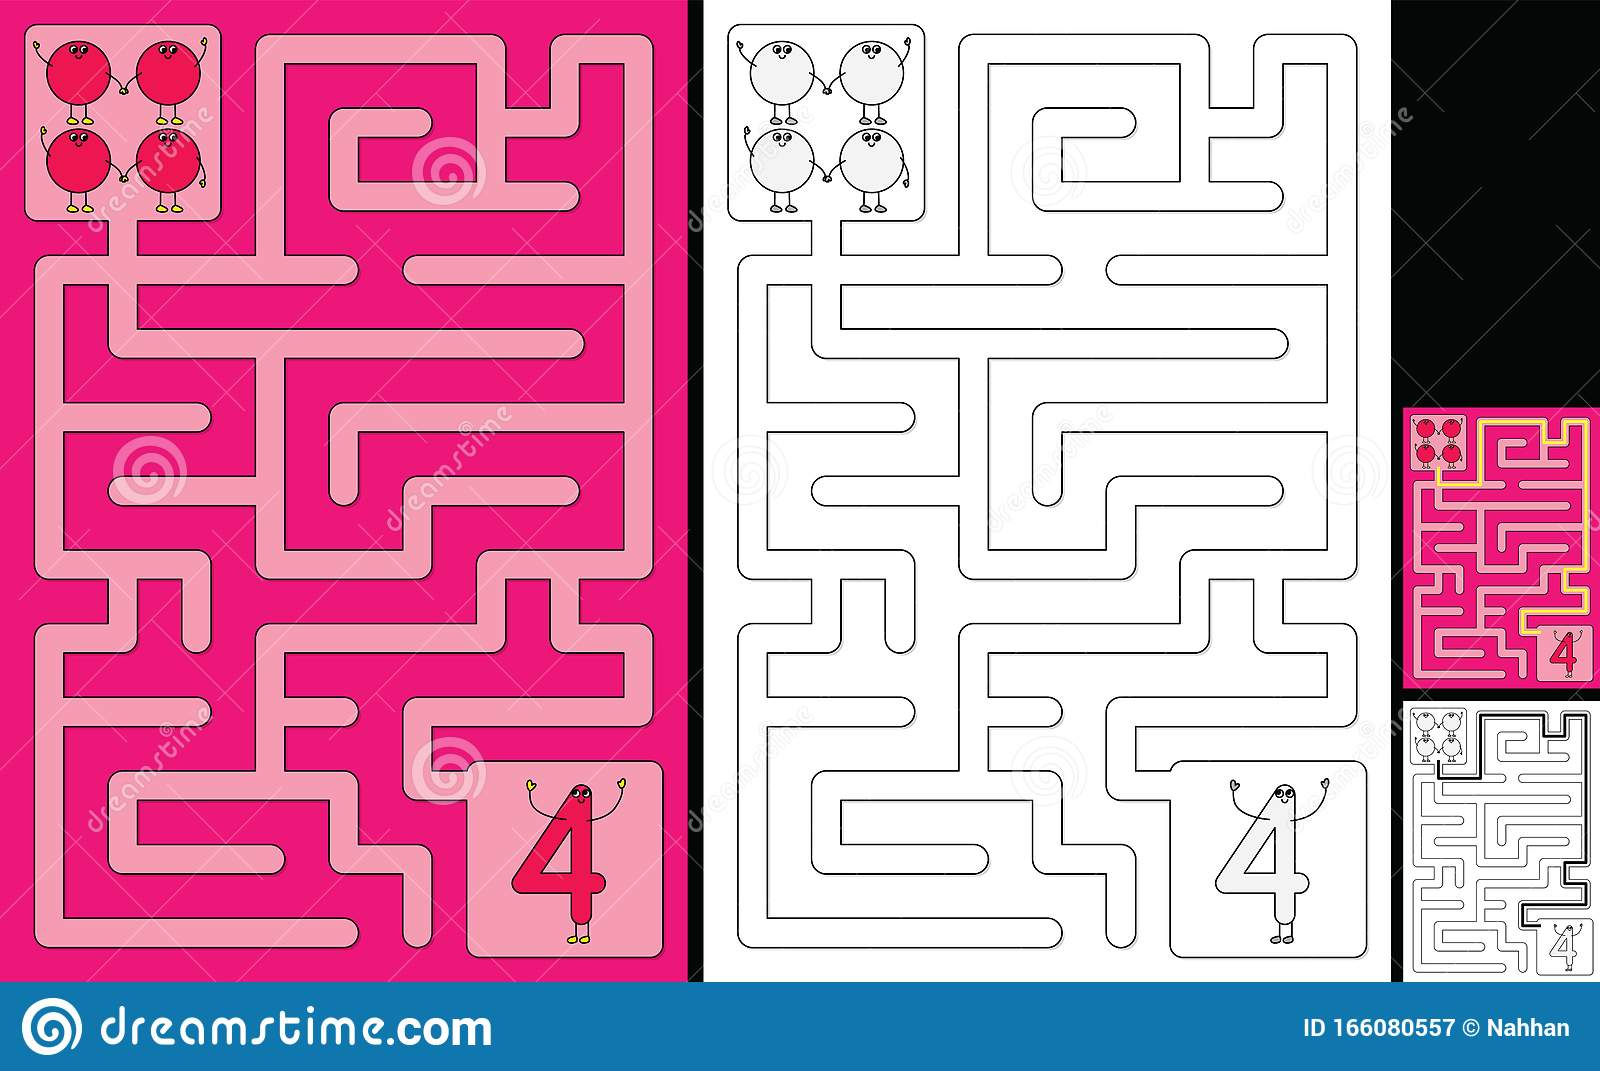 Easy Number Maze